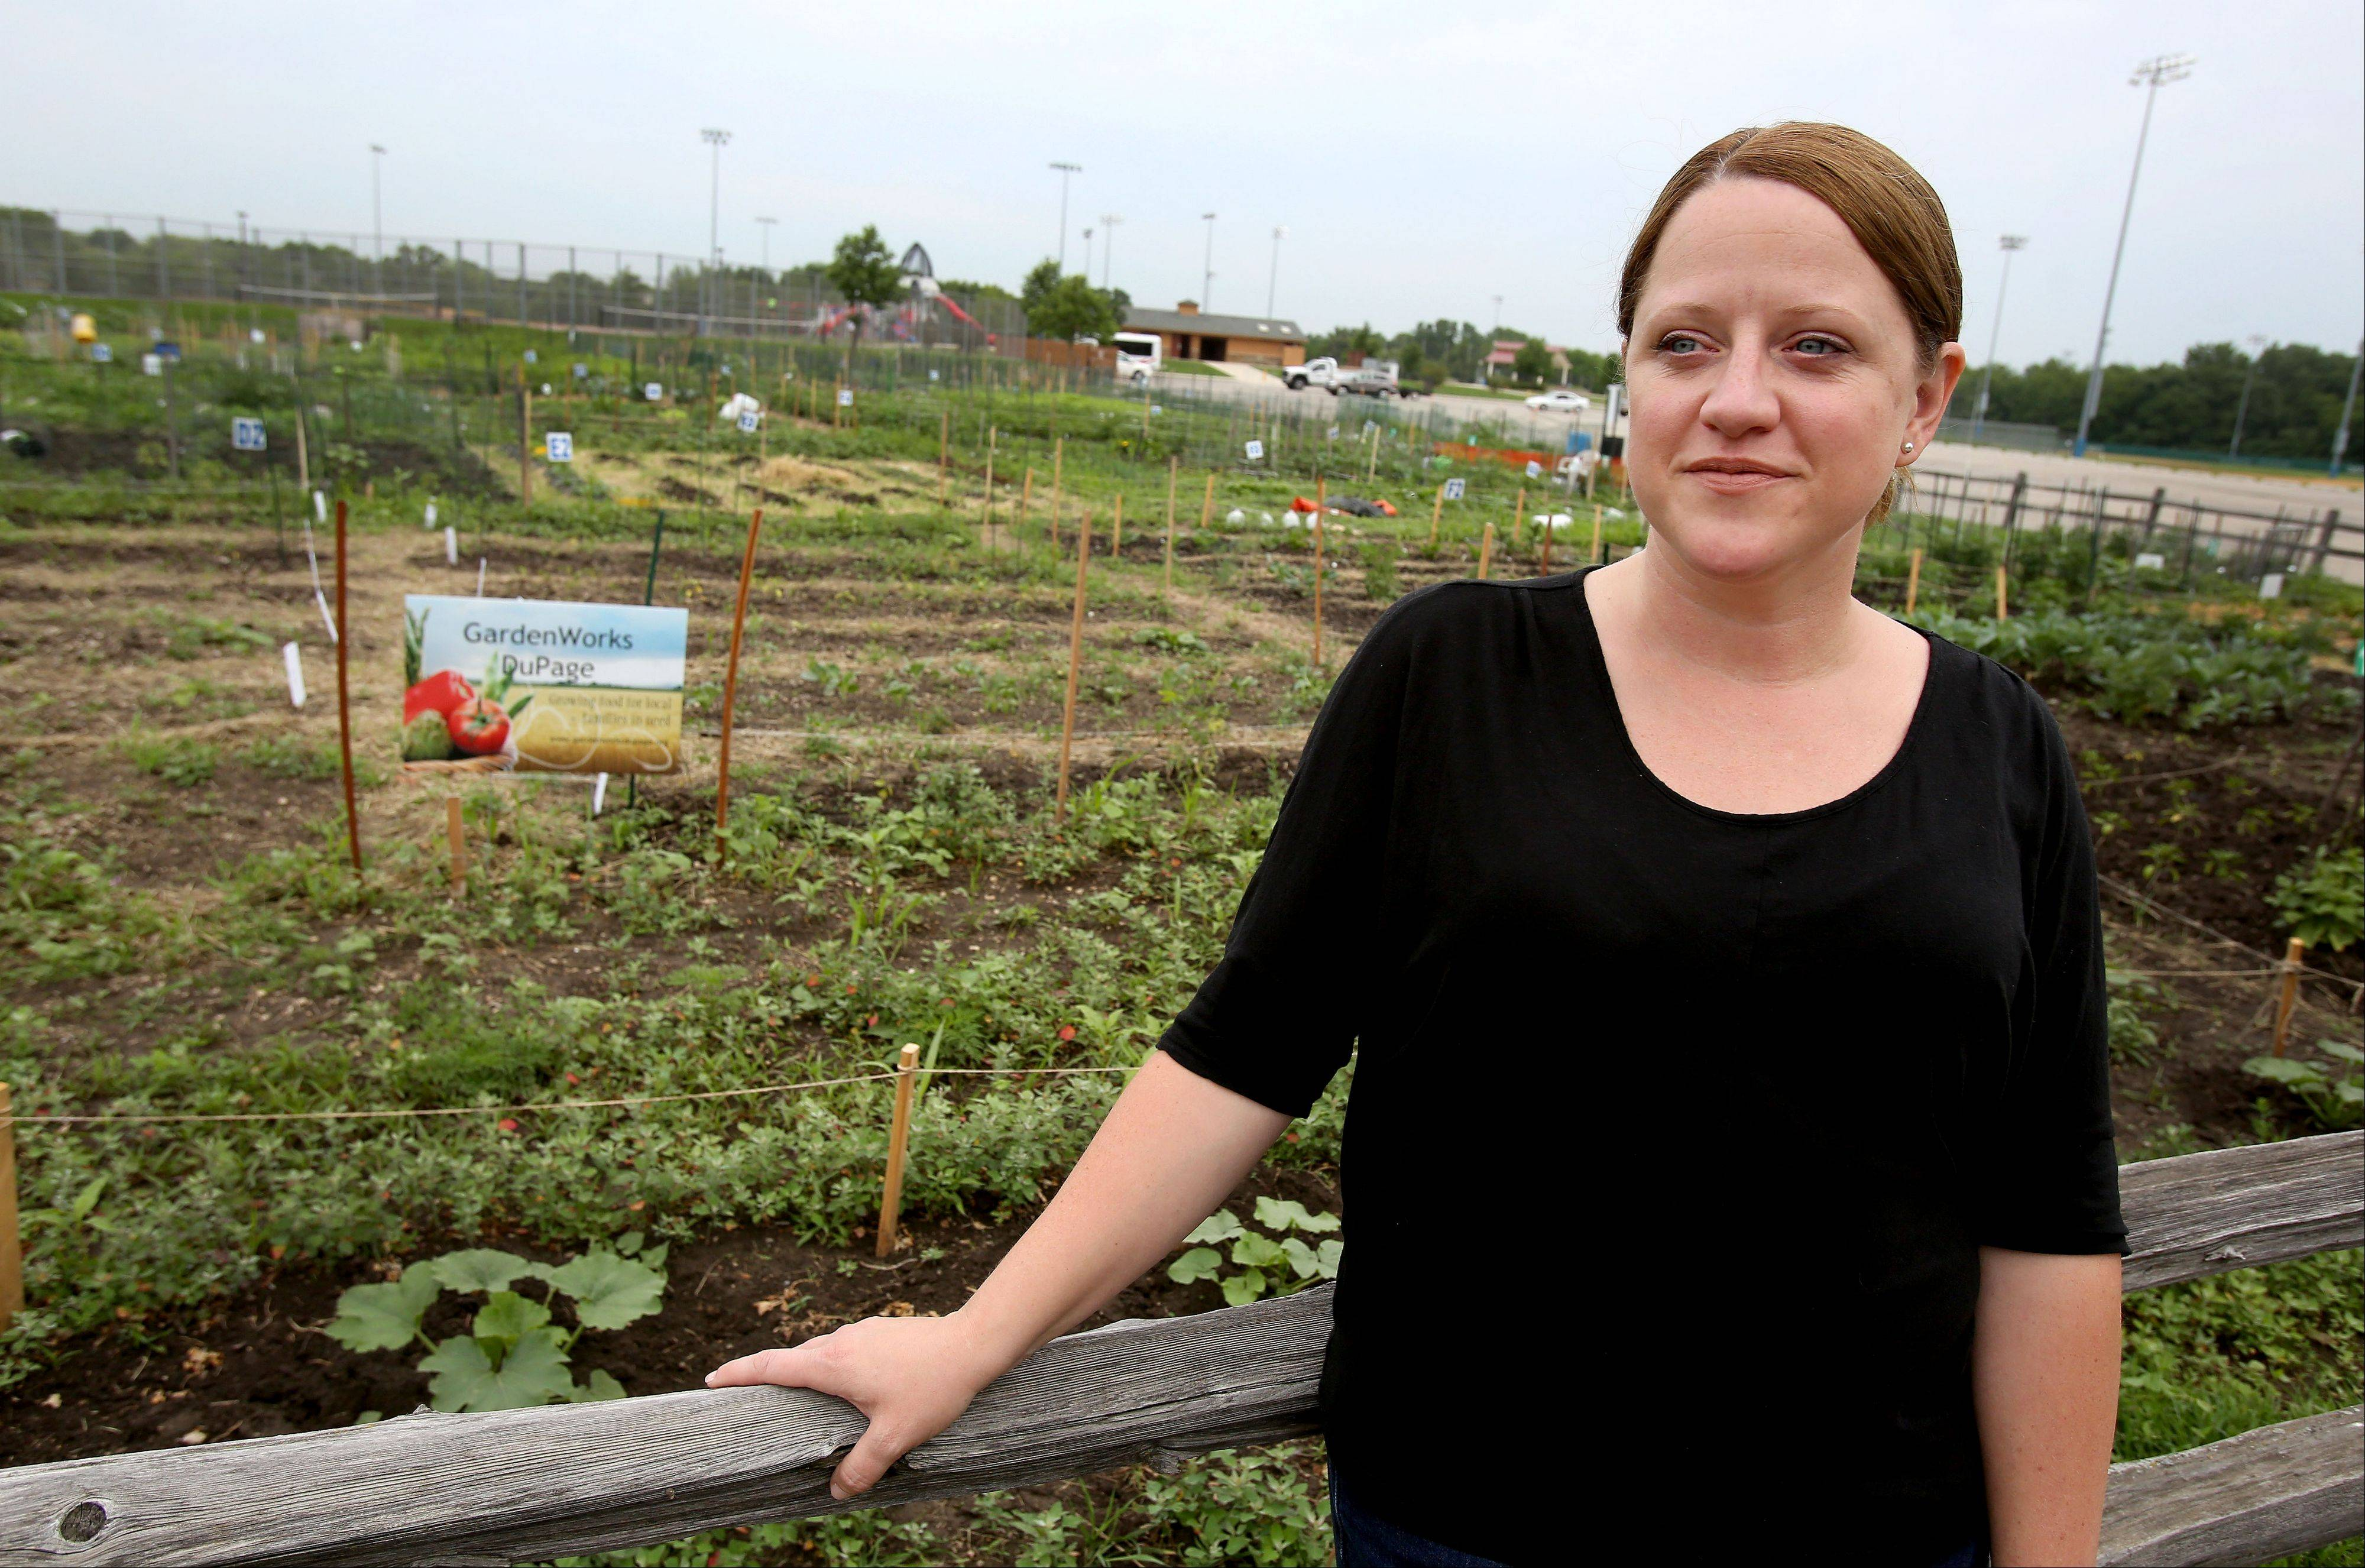 Tina Koral founded GardenWorks last year to provide families in need with raised-bed gardens and instructions on how to grow their own vegetables. The group also has planted two plots offered by the Glen Ellyn Park District at Village Green Park off Lambert Road.